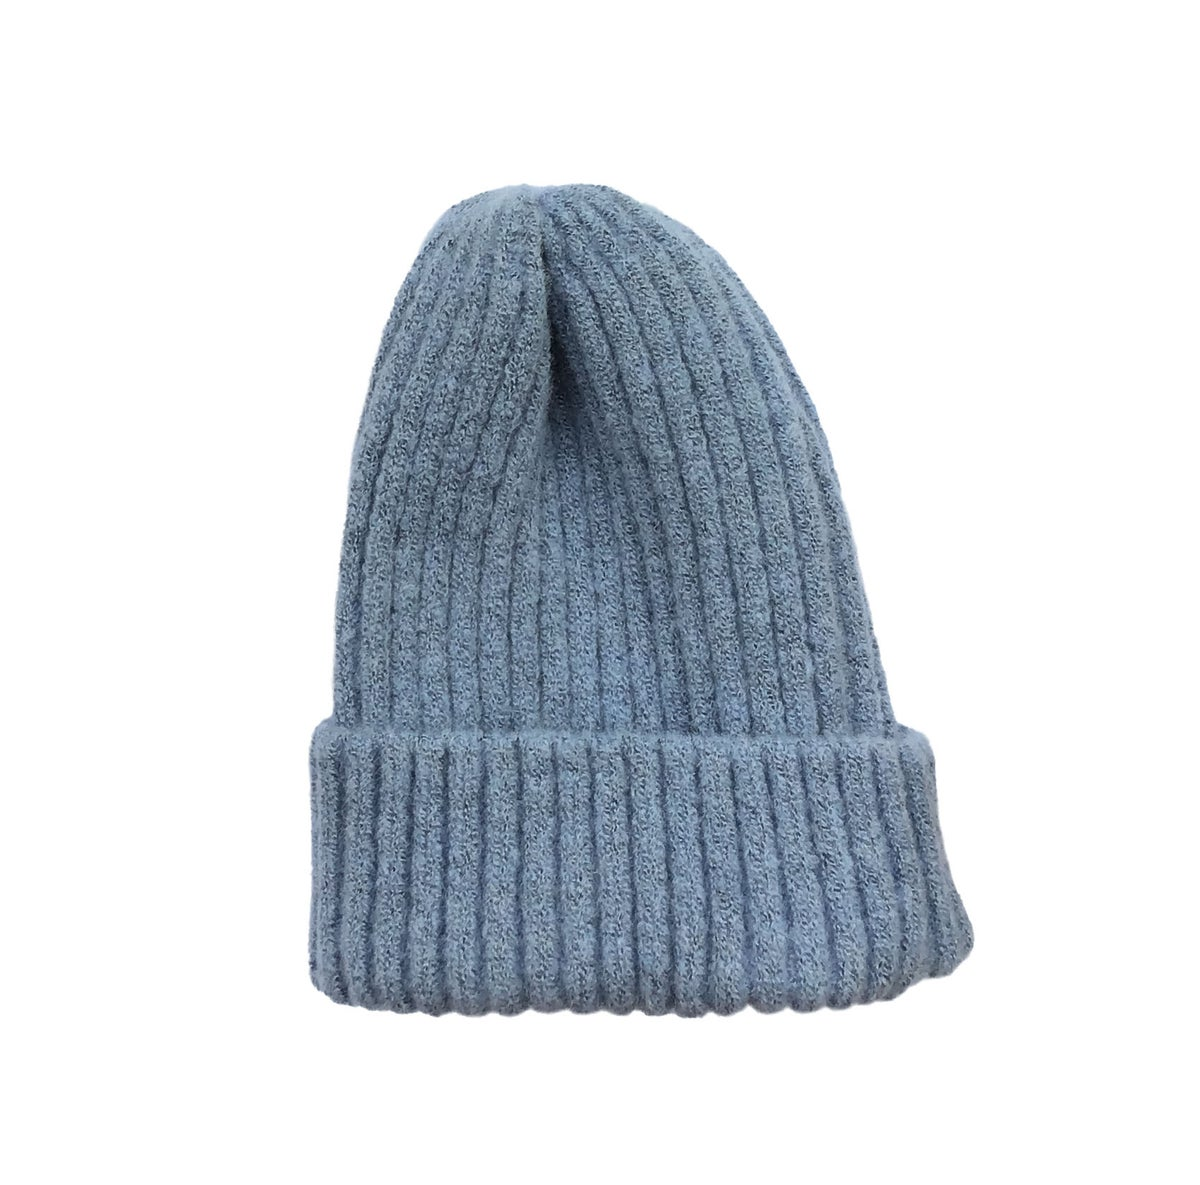 Image of Soft fisherman's style beanie/ watch cap. Sky Blue.